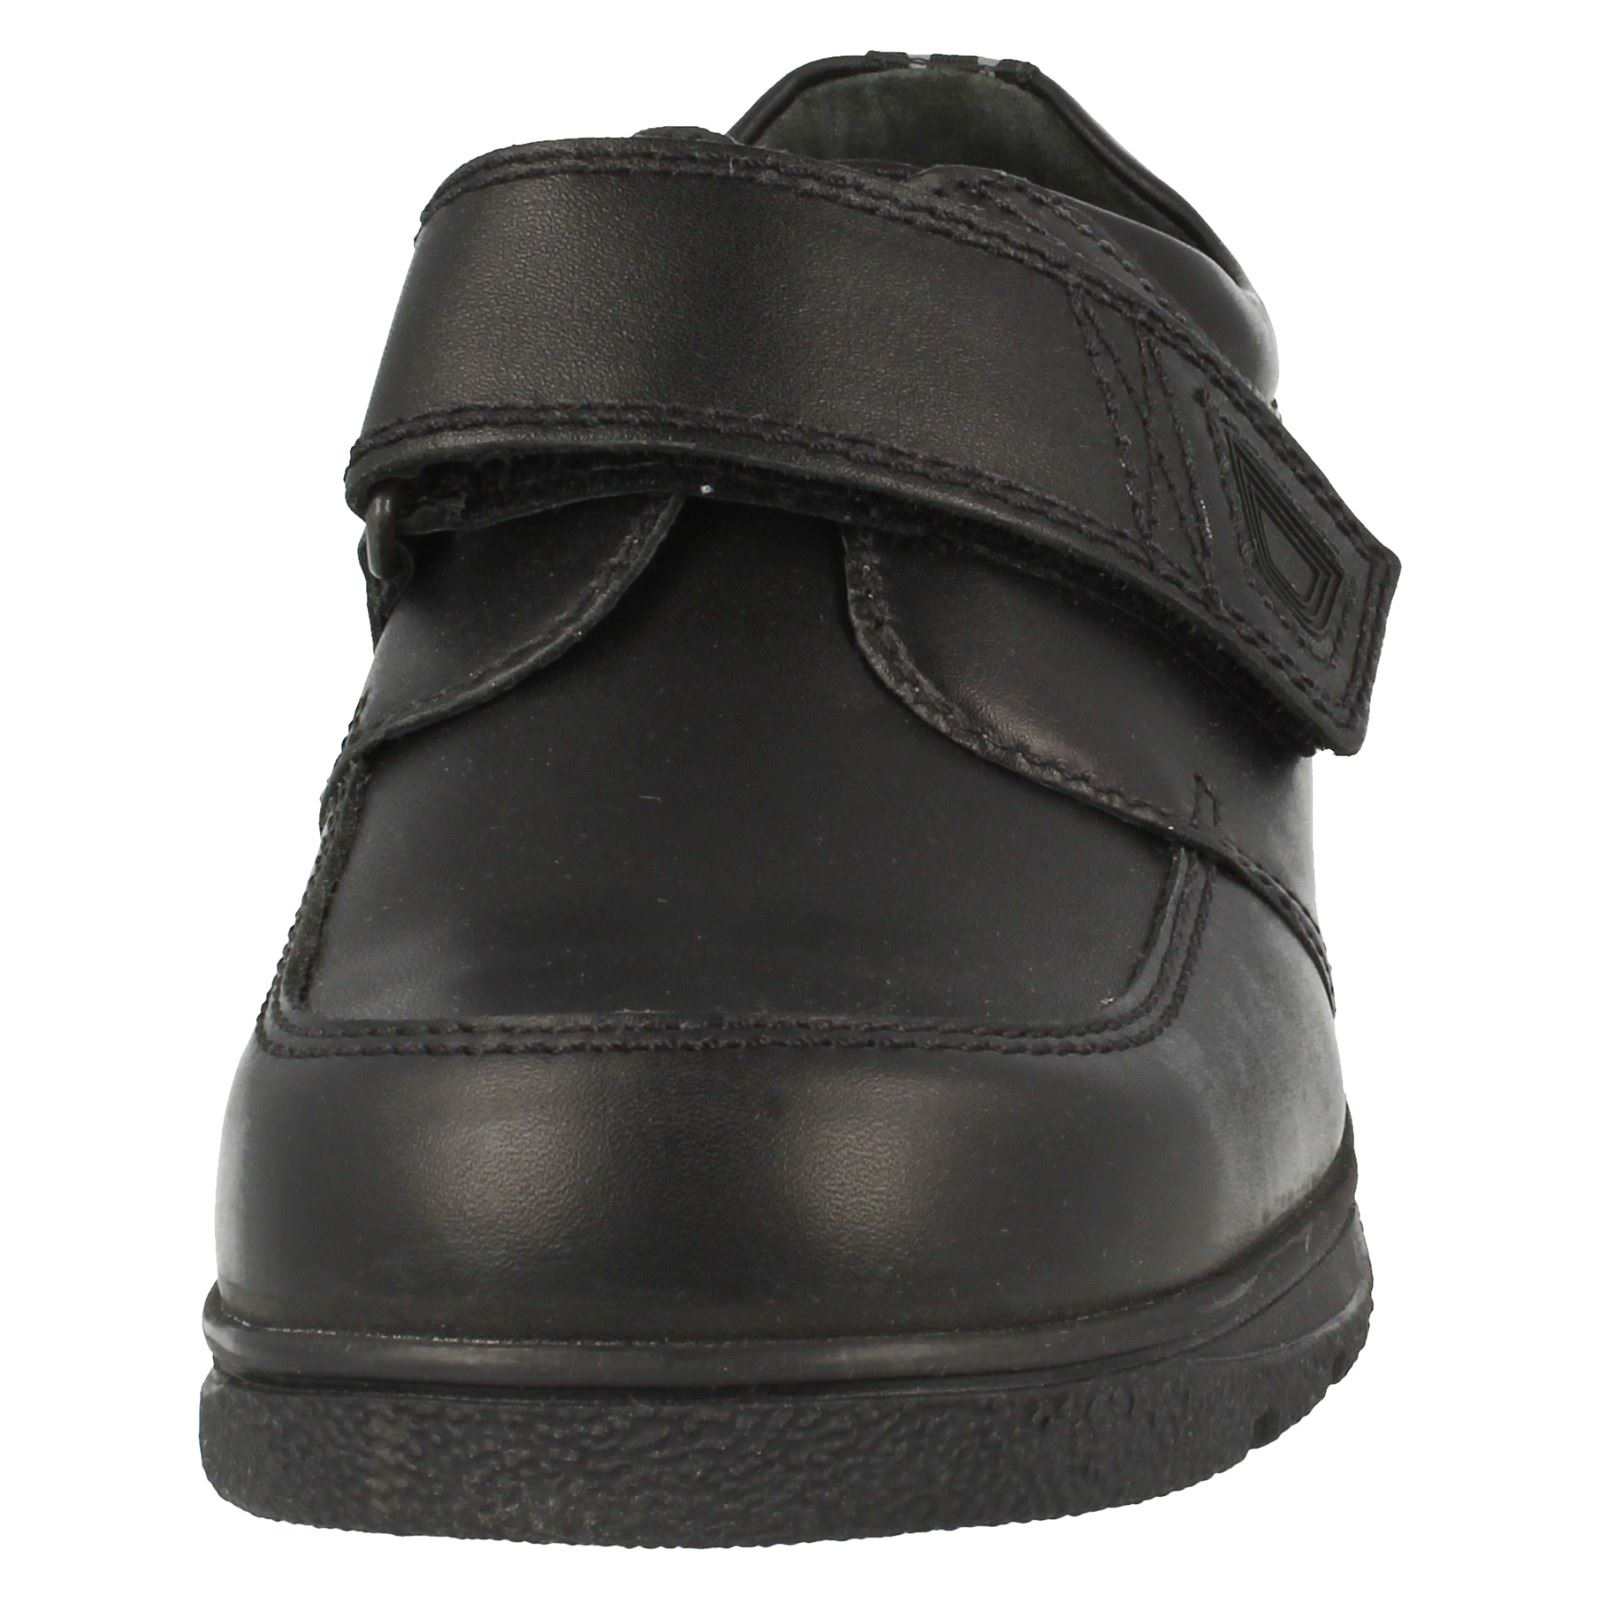 Boys Startrite School Shoes /'Accelerate/'